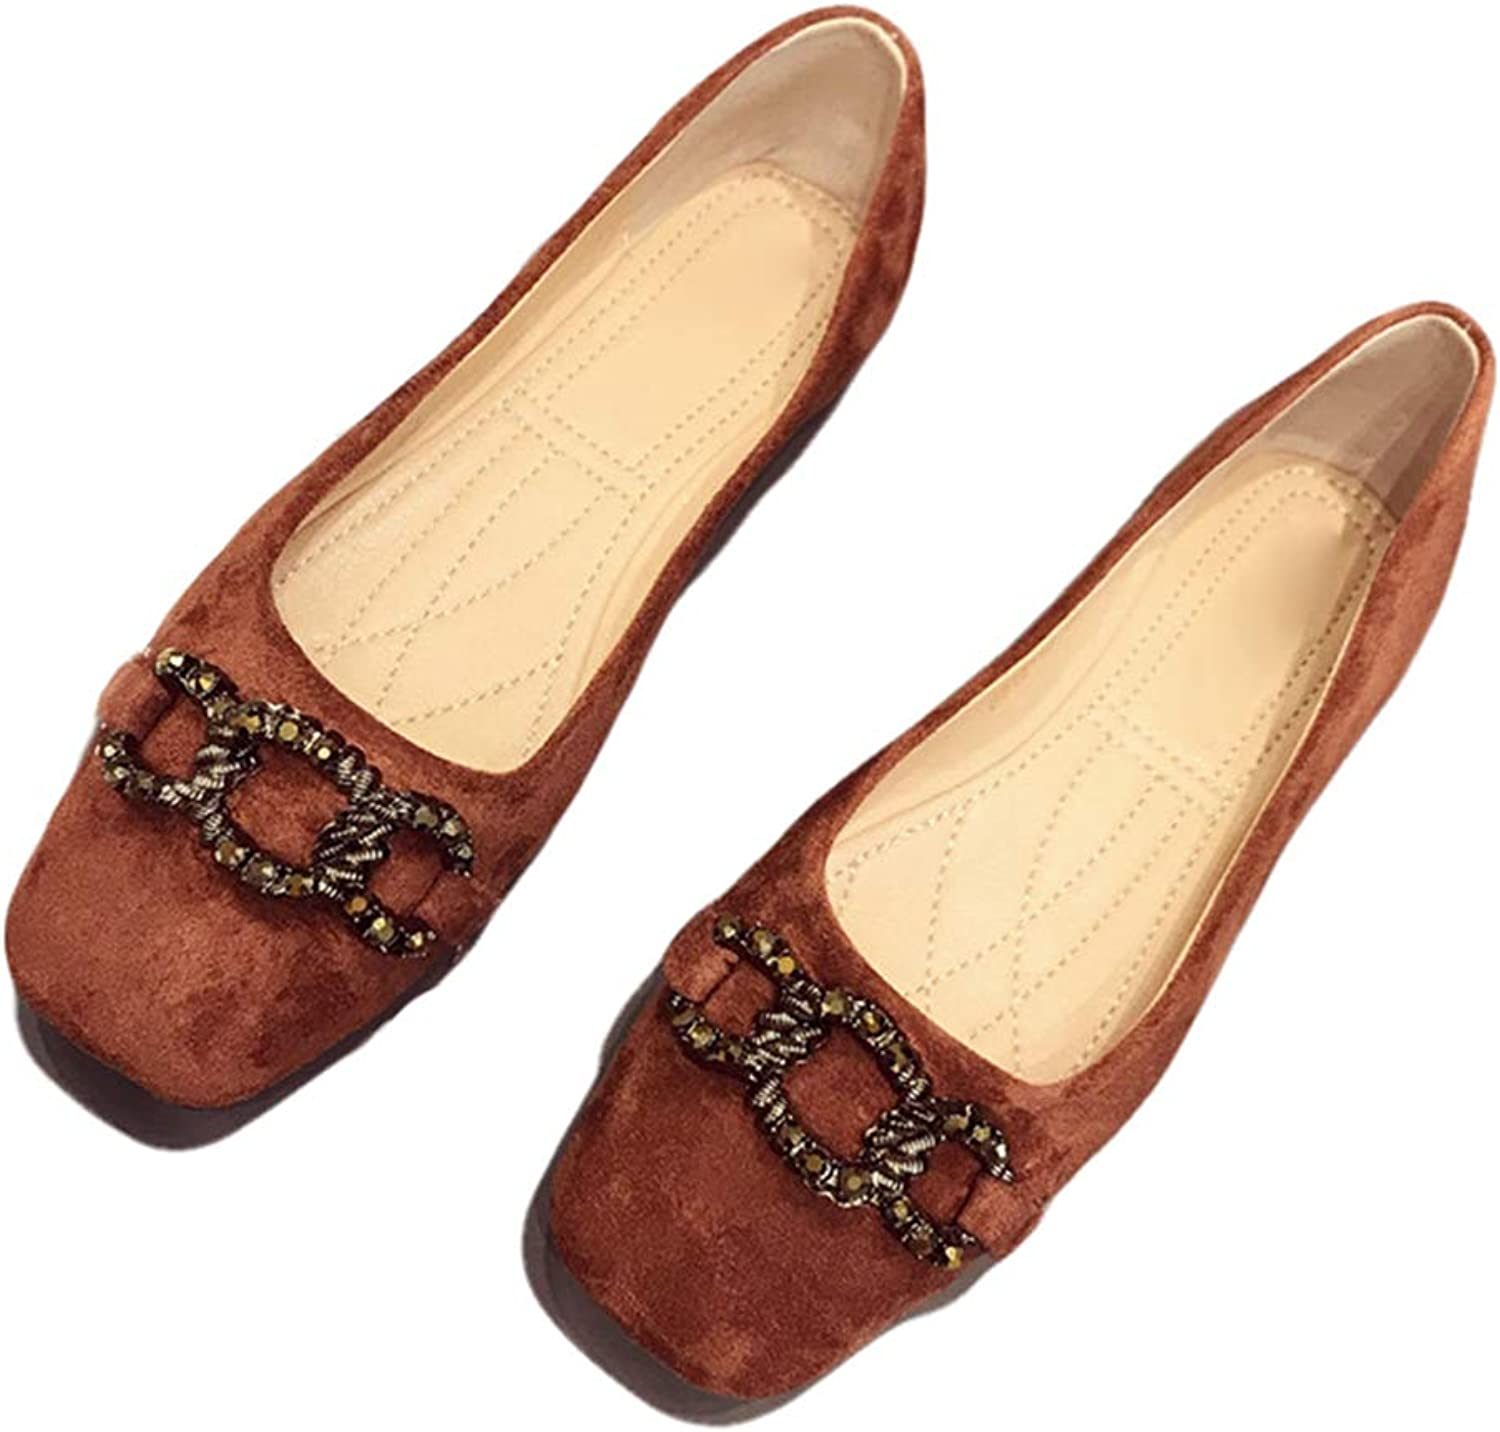 Kyle Walsh Pa Women Ballet Flats Square Toe Slip-on Female Casual Comfortable Loafers shoes